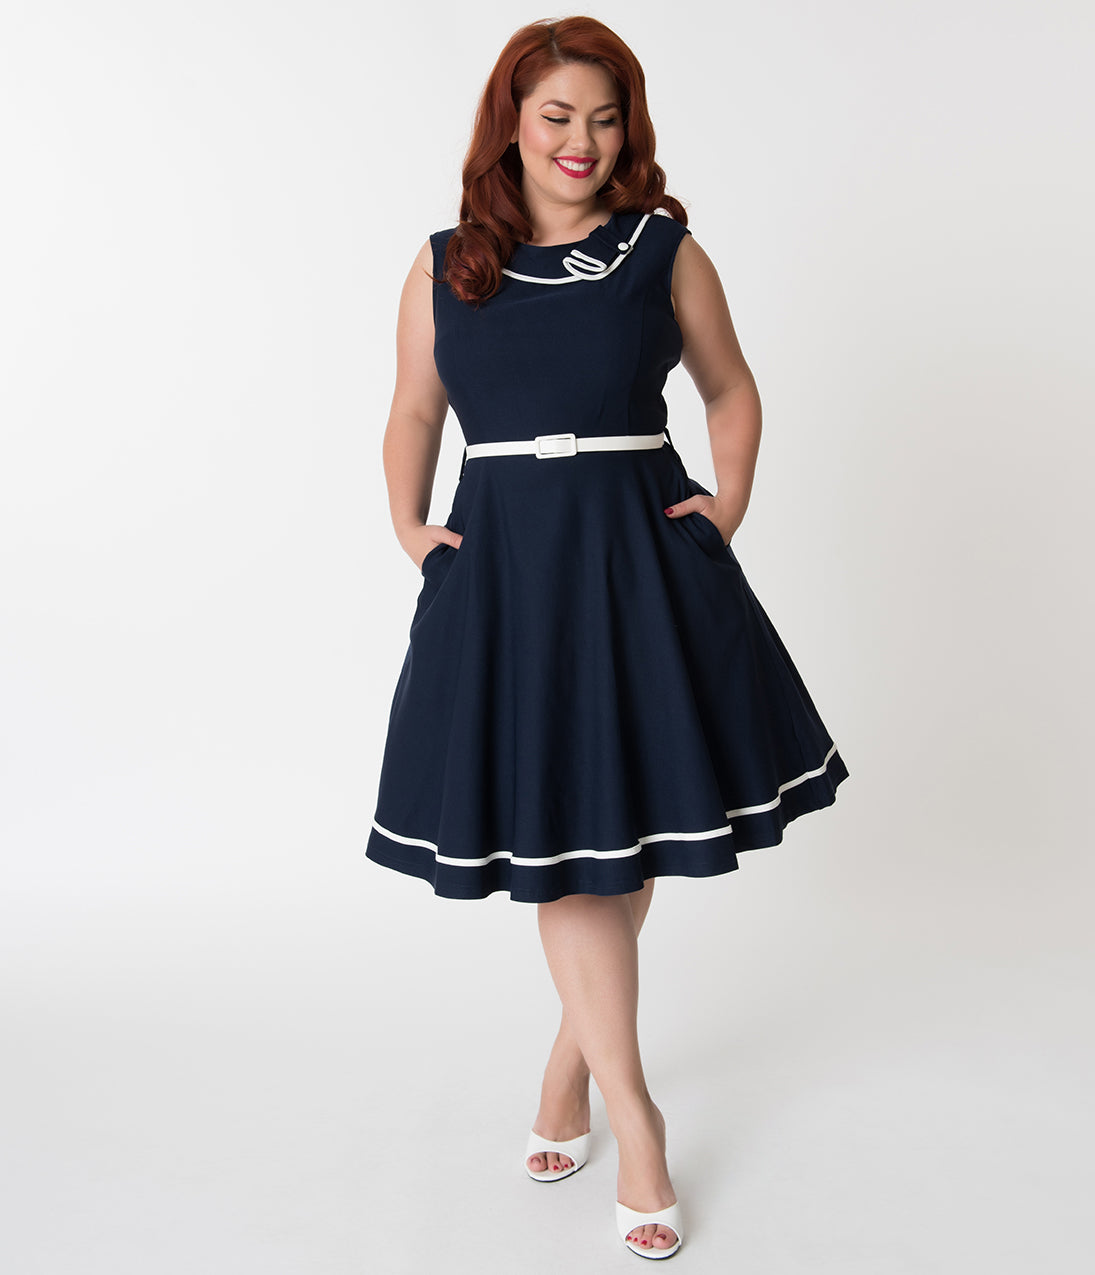 Sailor Dresses, Nautical Dress, Pin Up & WW2 Dresses Plus Size Navy Blue  White Nautical Sleeveless Cotton Stretch Swing Dress $78.00 AT vintagedancer.com